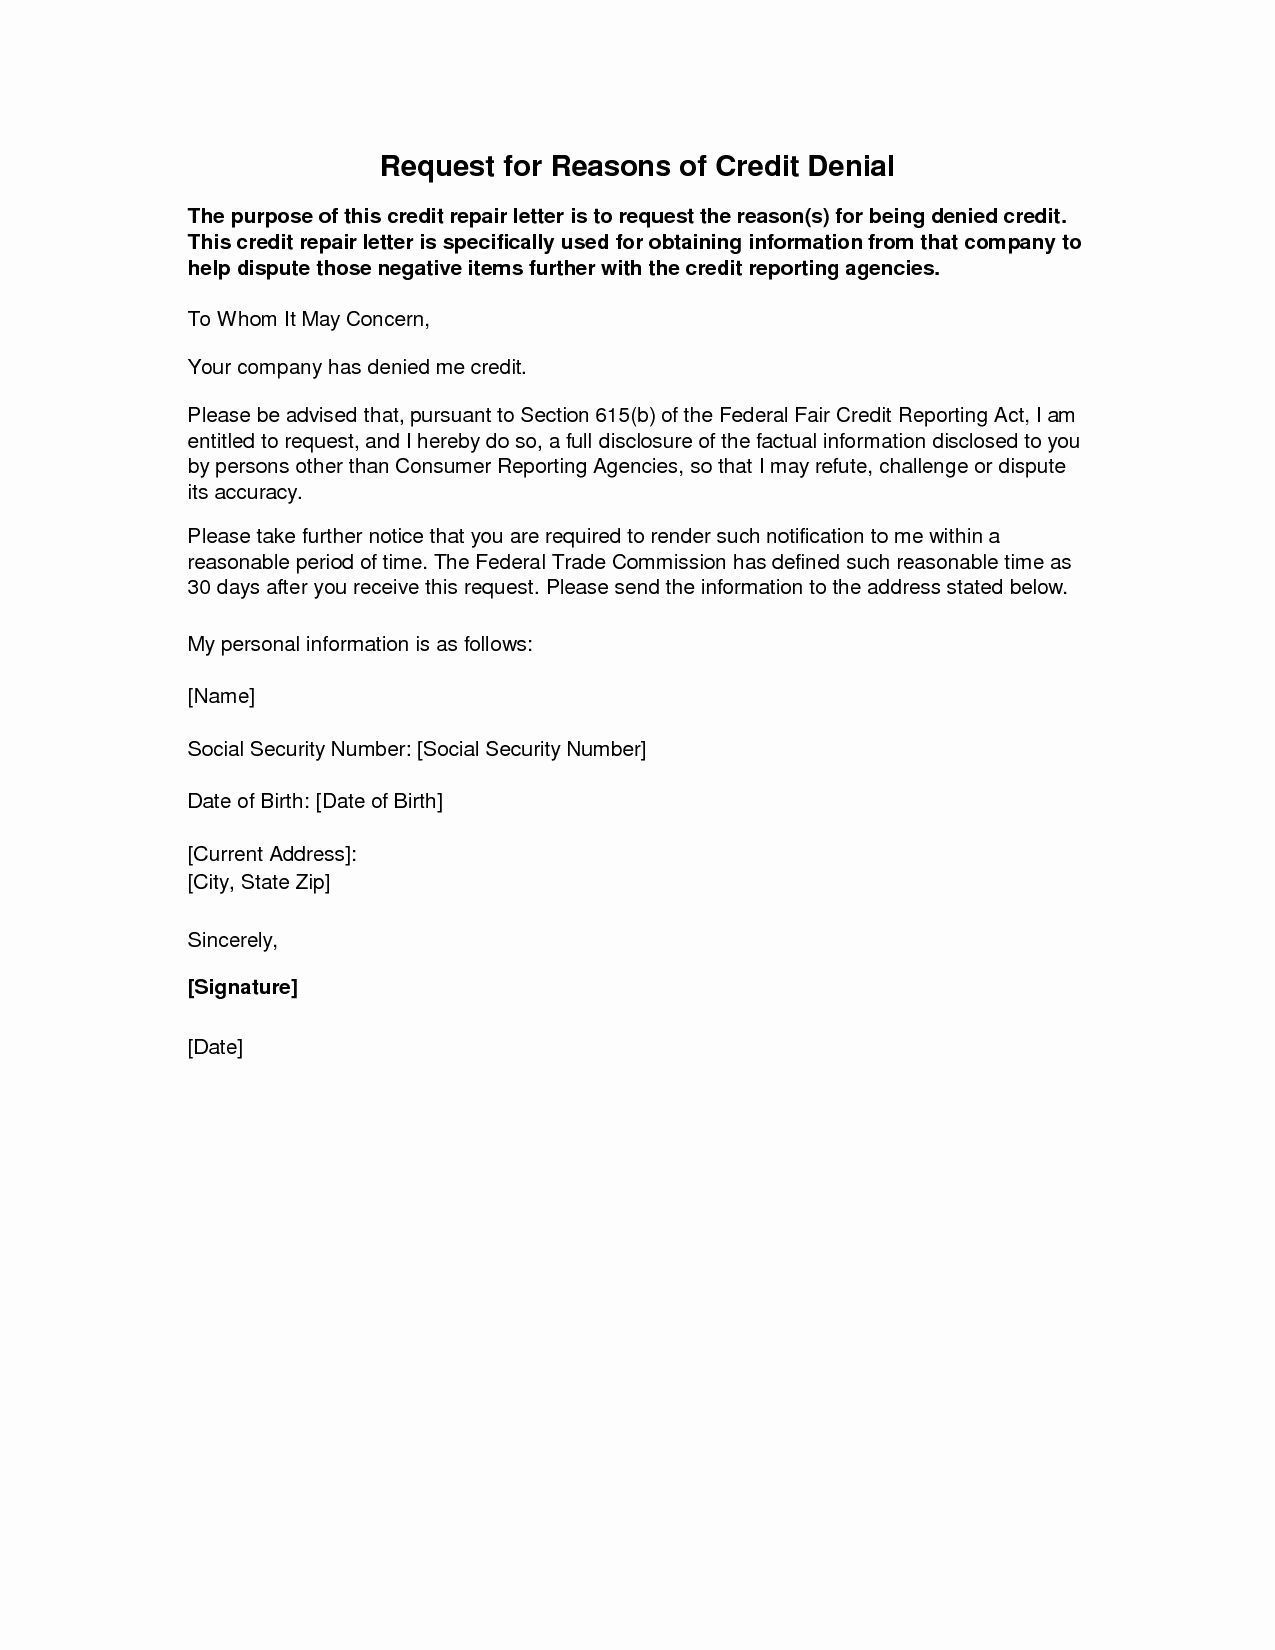 credit inquiry removal letter template new goodwill career objective for finance kinds of skills to put on resume best job format pdf